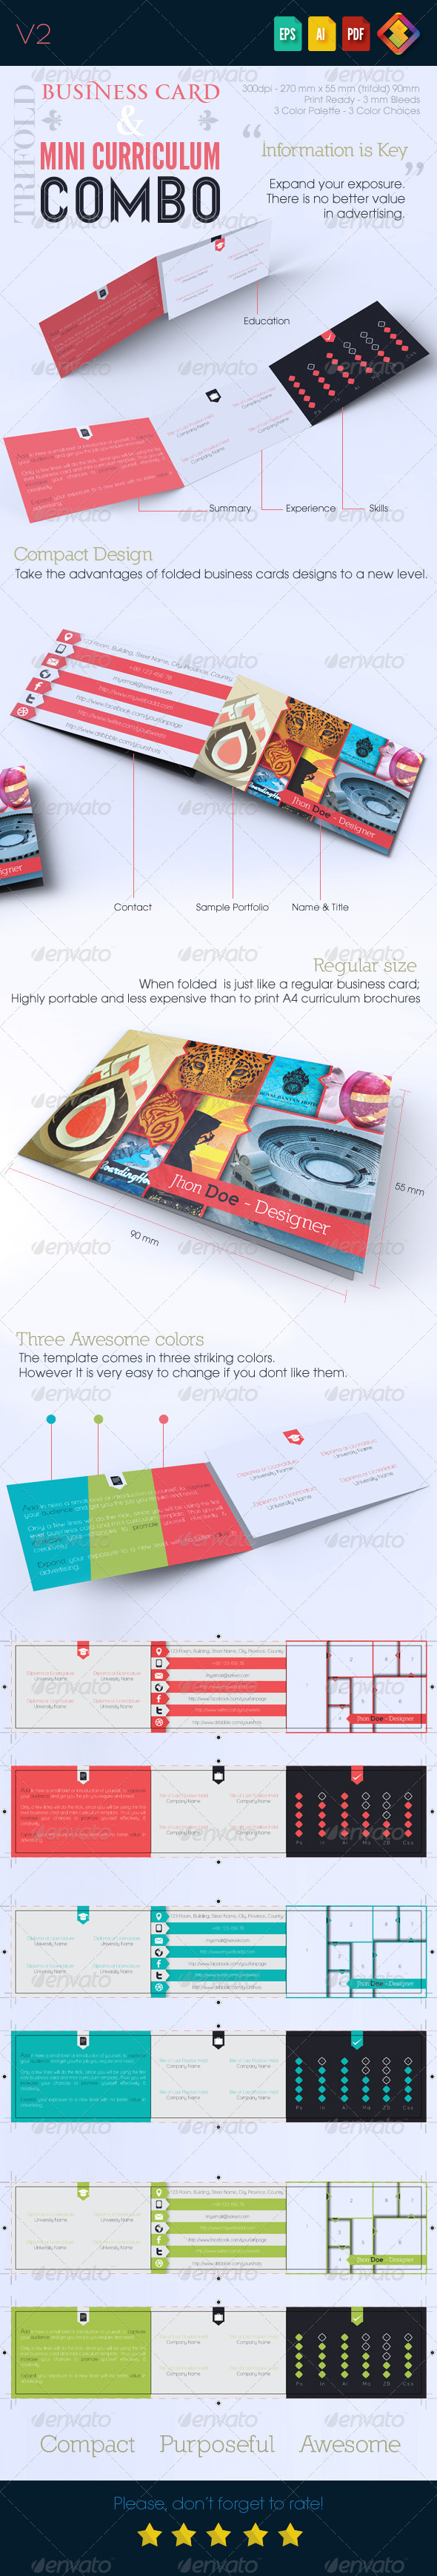 Trifold Business Card with Mini Curriculum Combo | Brochures ...